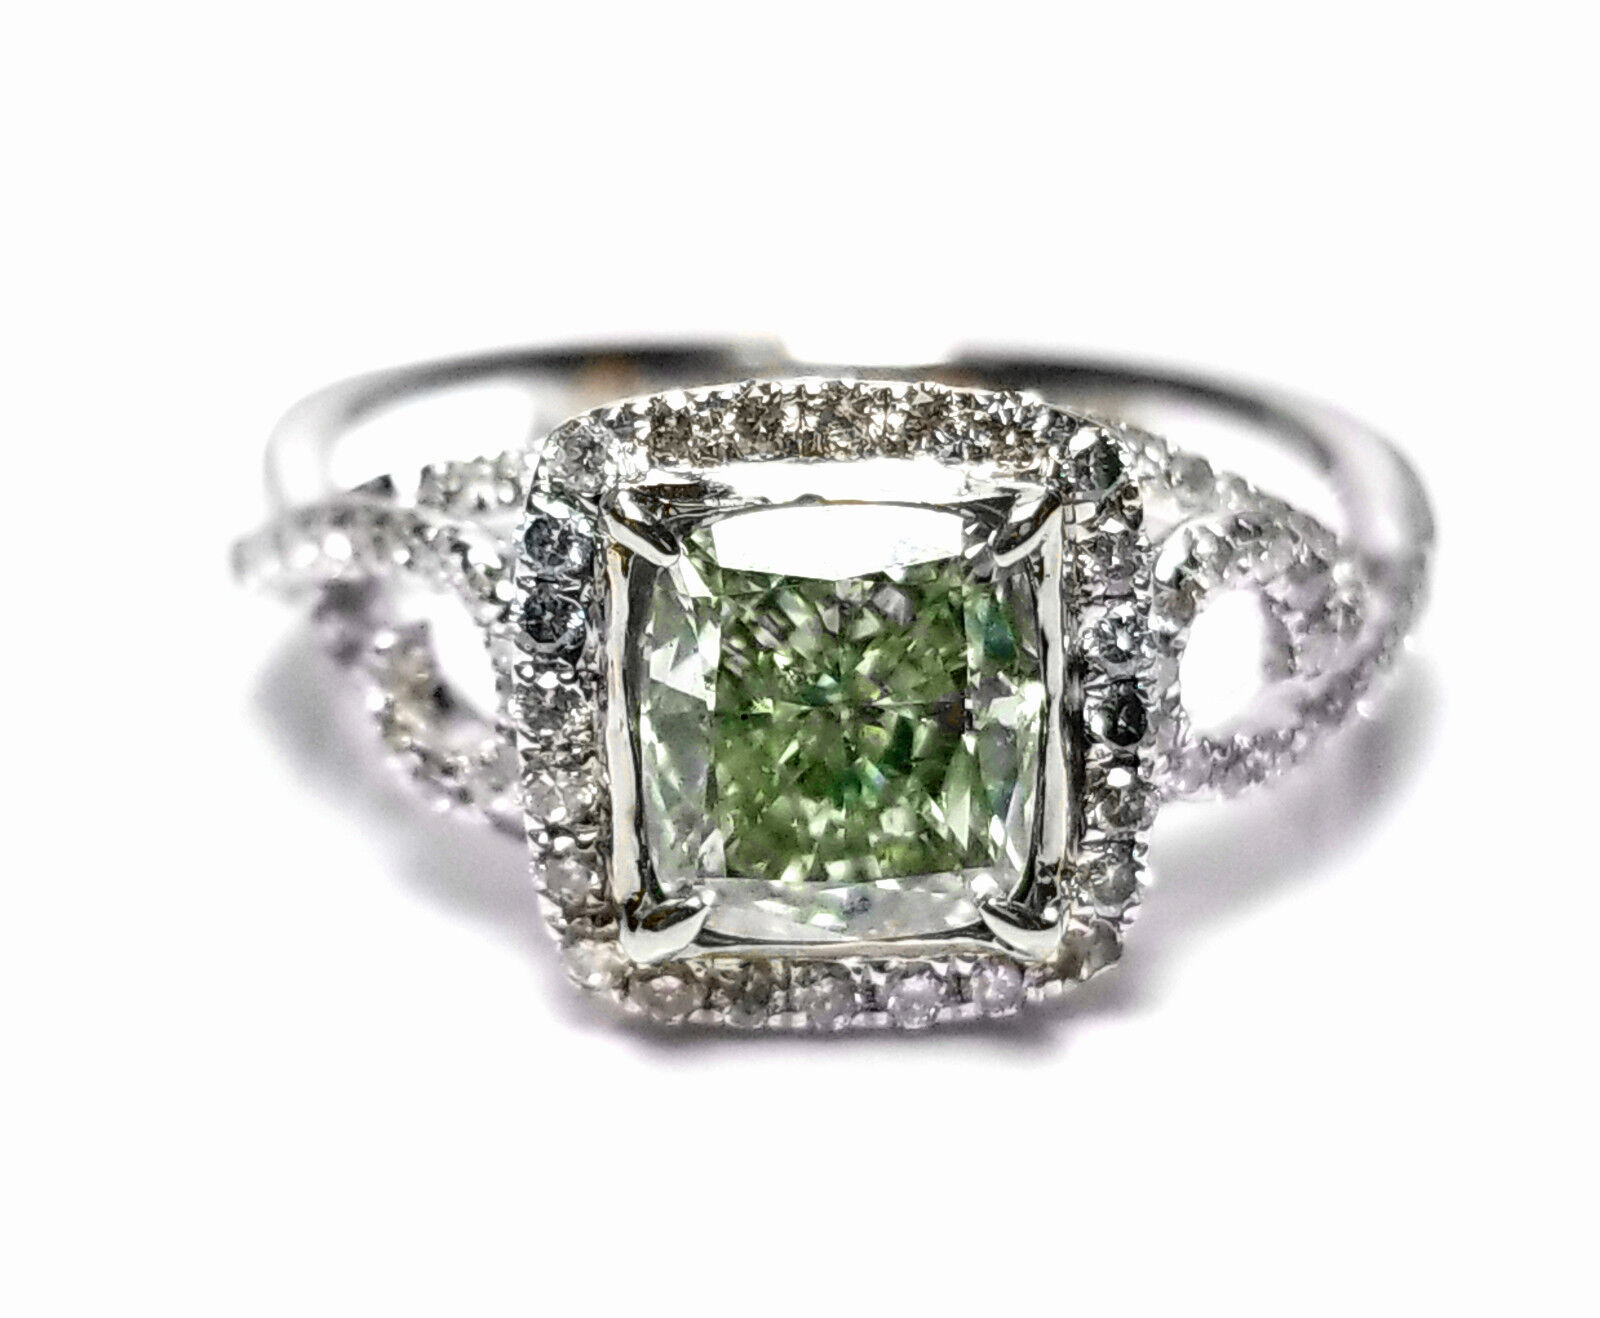 1.73ct Natural Fancy Green Diamond Engagement Ring GIA 18K White Gold Cushion 2